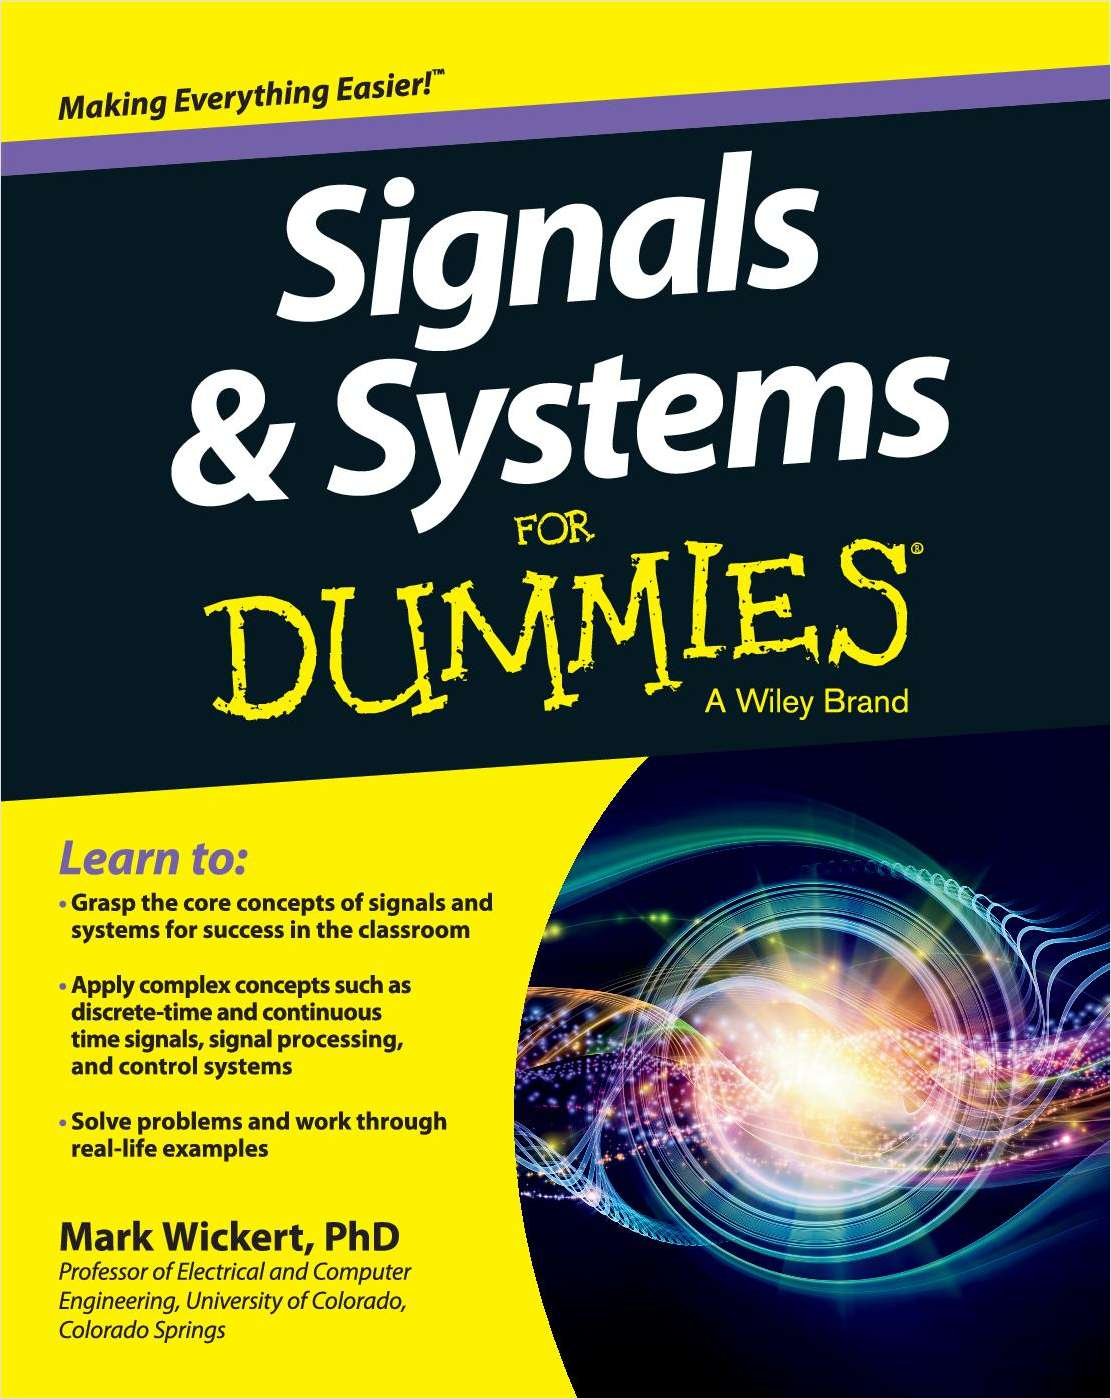 Signals and Systems For Dummies -- Free Sample Chapter